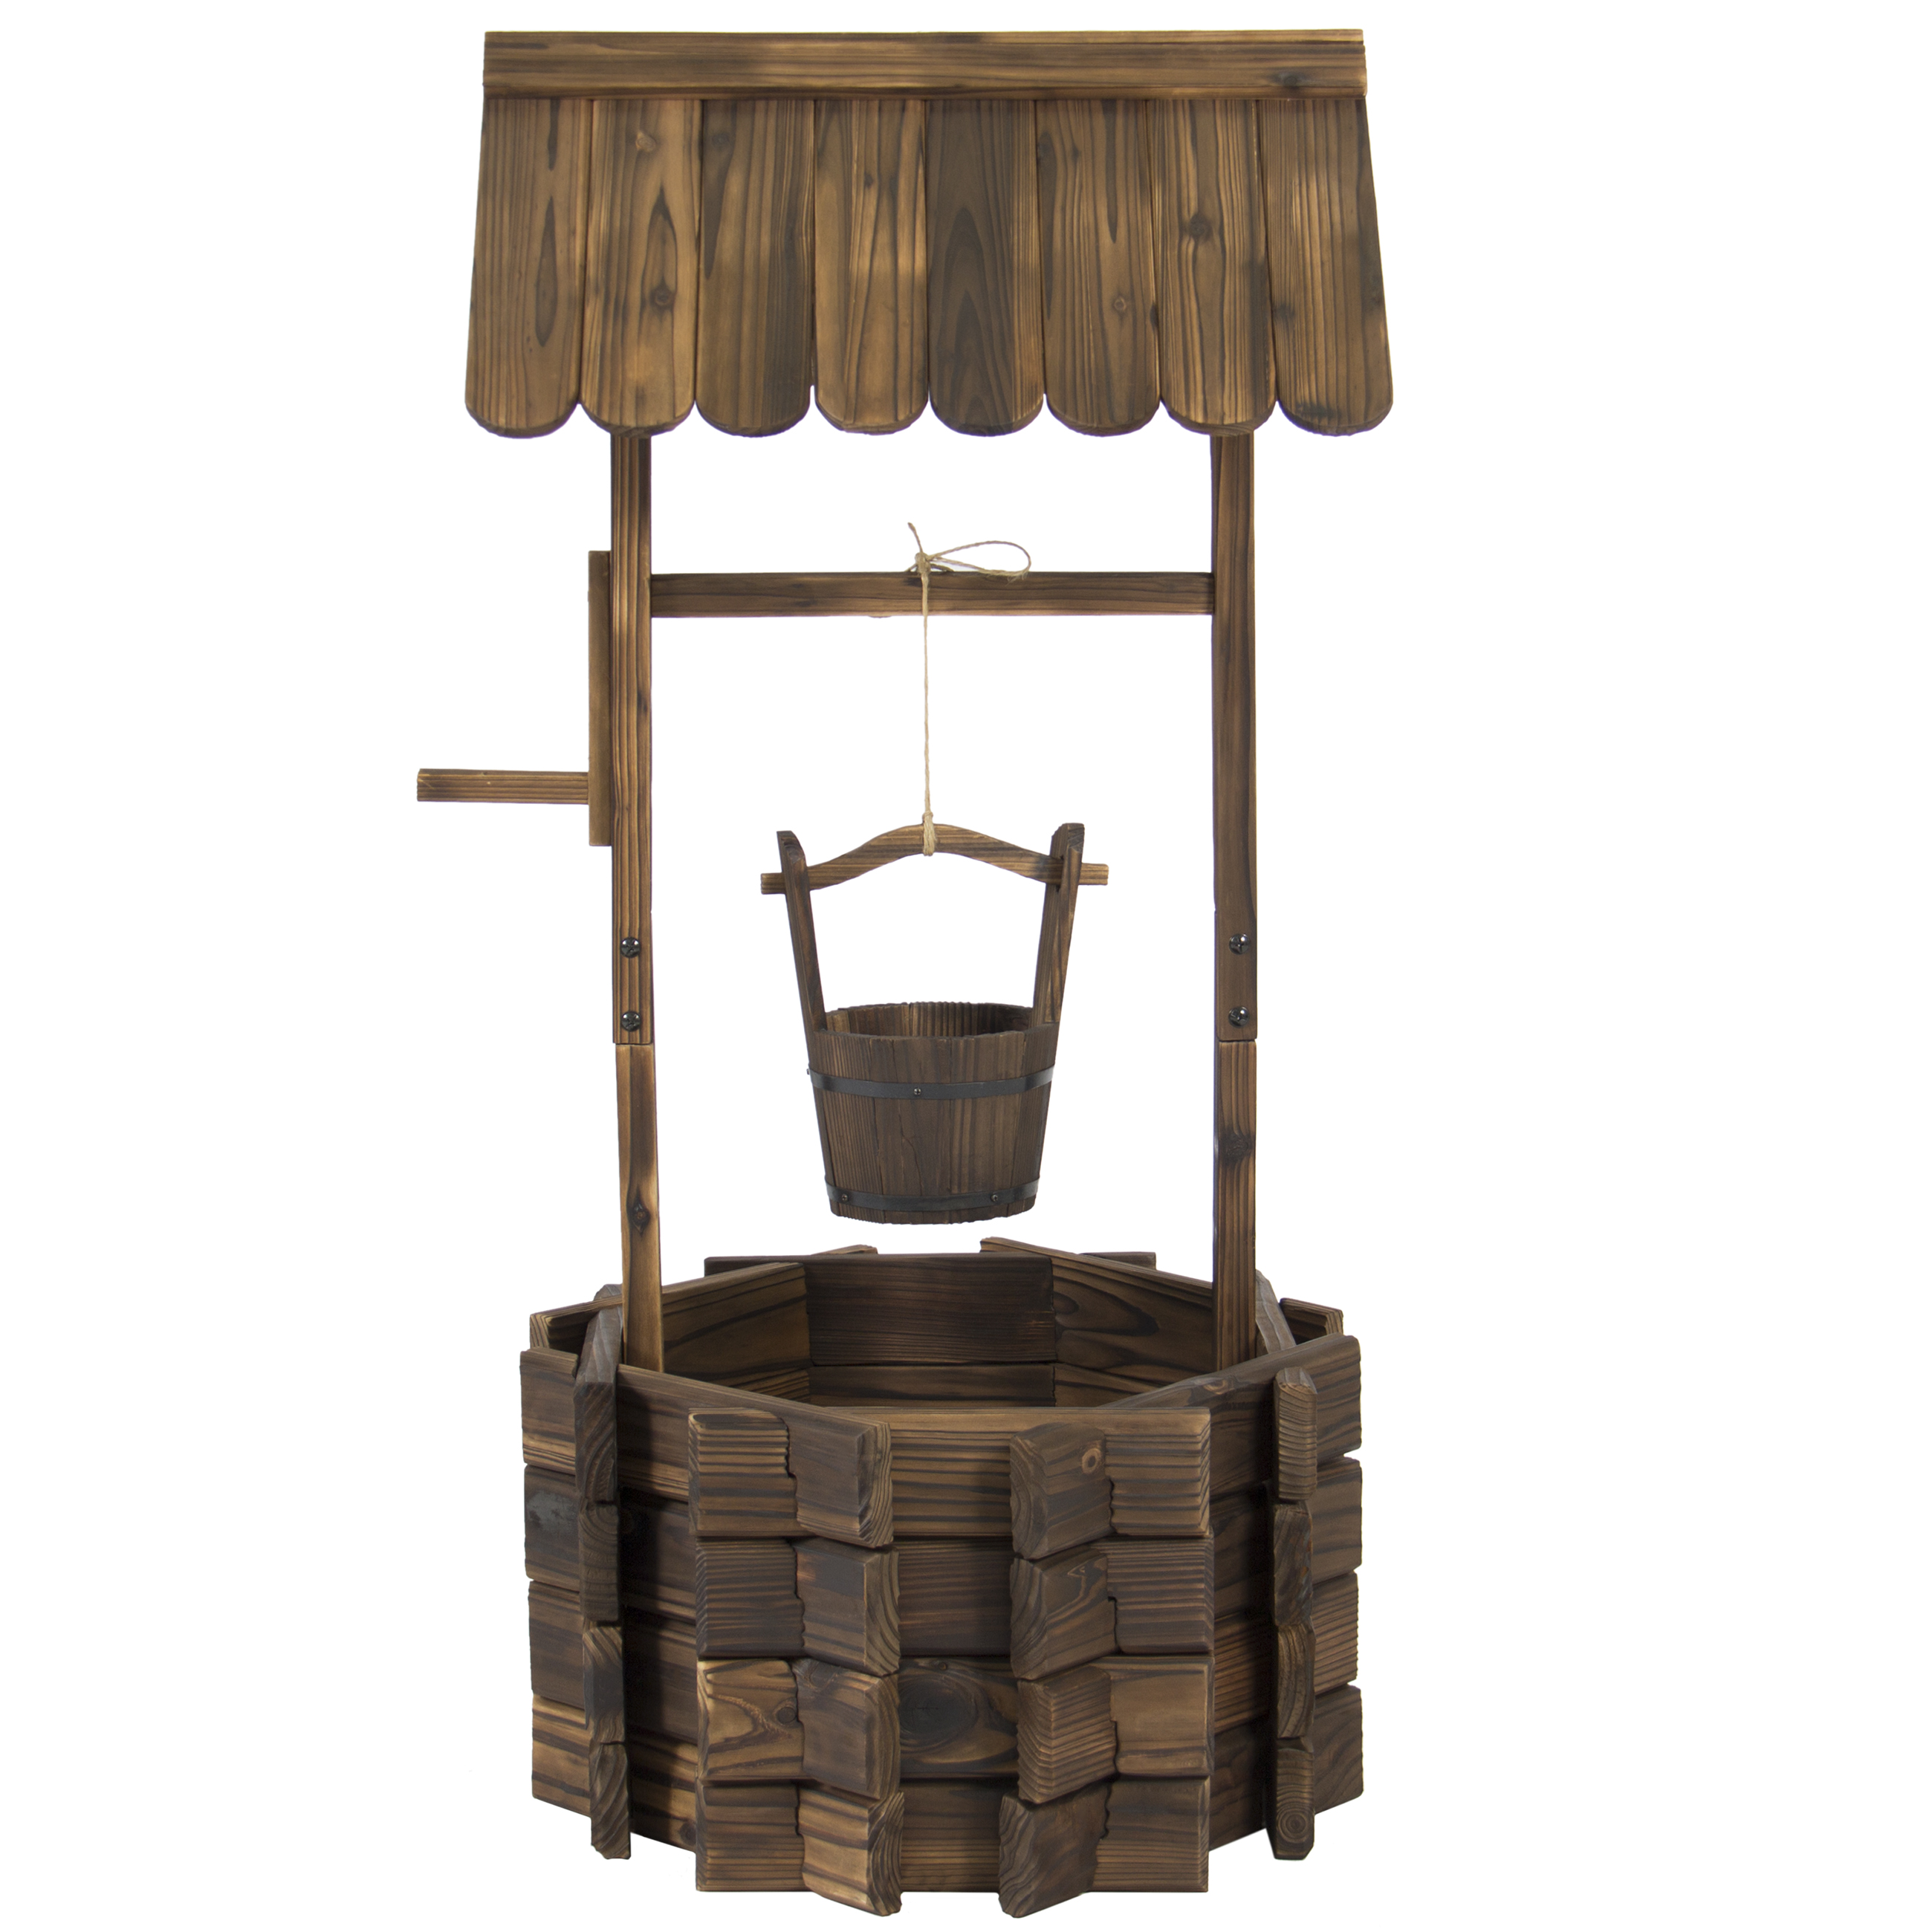 Best Choice Products Wooden Wishing Well Bucket Planter Walmart Com